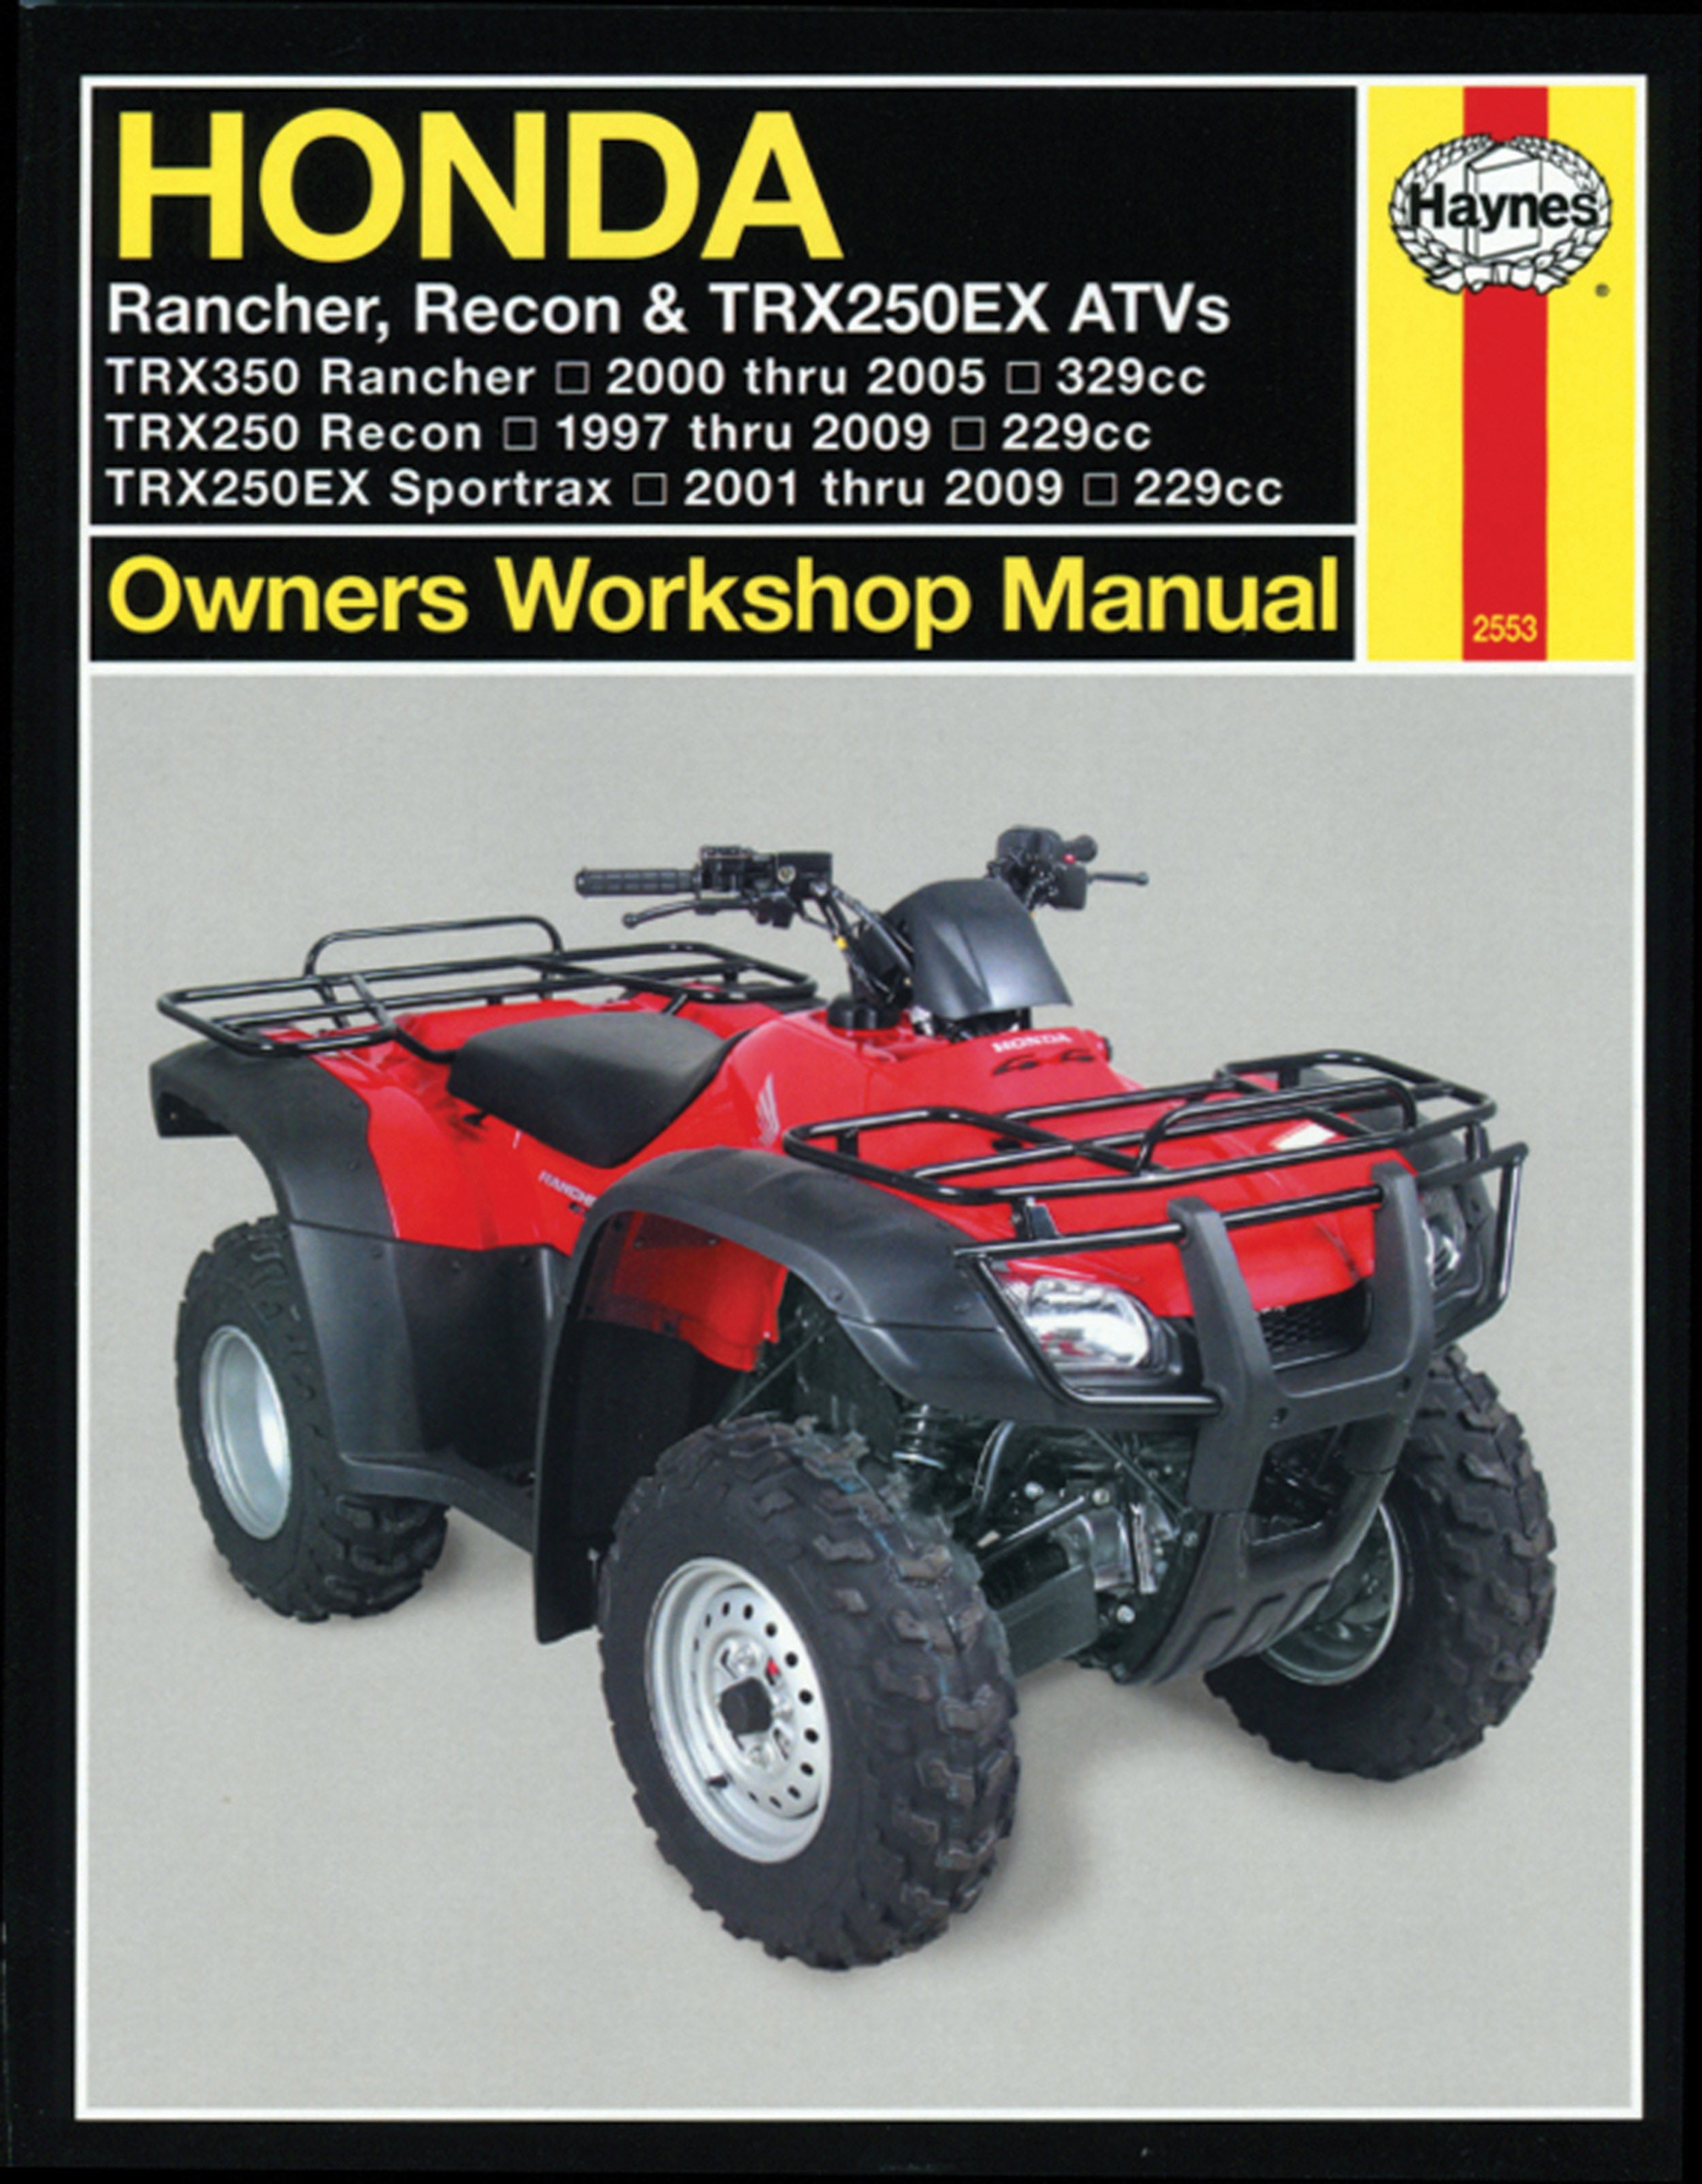 HAYNES Repair Manual - Honda TRX250 Recon 1997-09 / TRX250EX Sportrax 2001-09  / TRX350 Rancher 2000-05